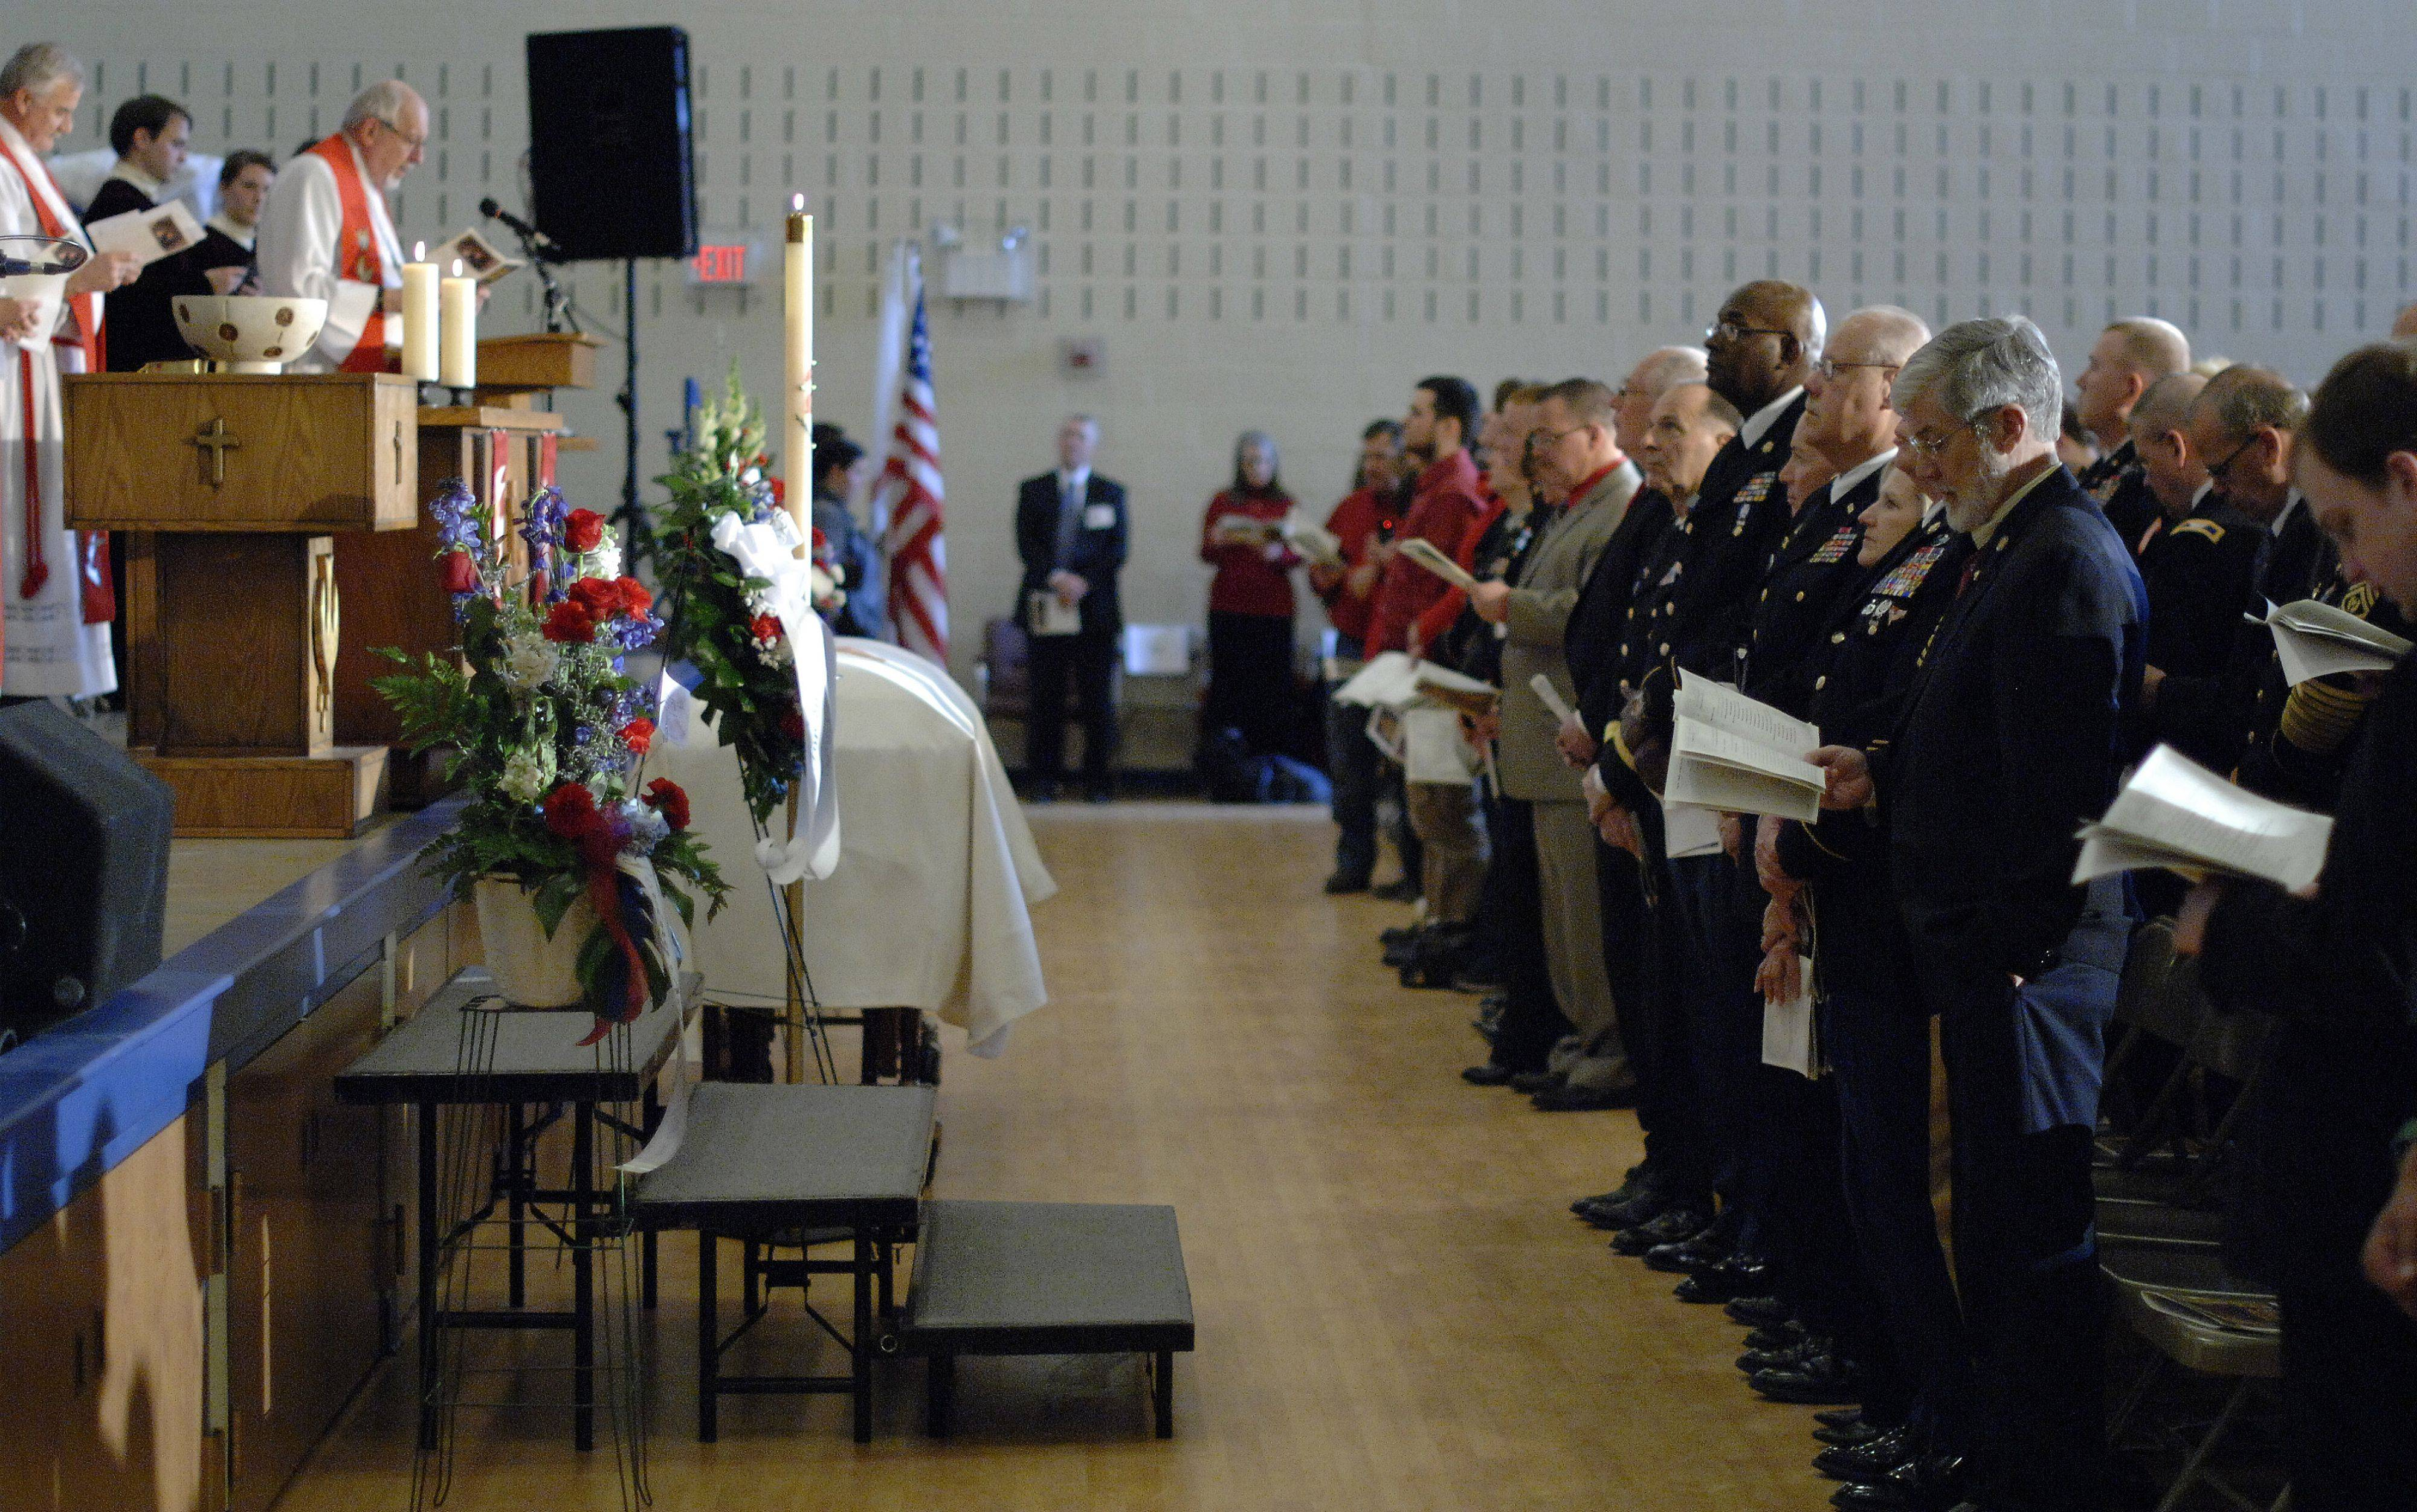 The casket of Spc. Christopher A. Patterson, a member of the 713th Engineer Company of the Indiana National Guard, sits at the front of the auditorium at Immanuel Lutheran Church in Batavia on Saturday, January 21.